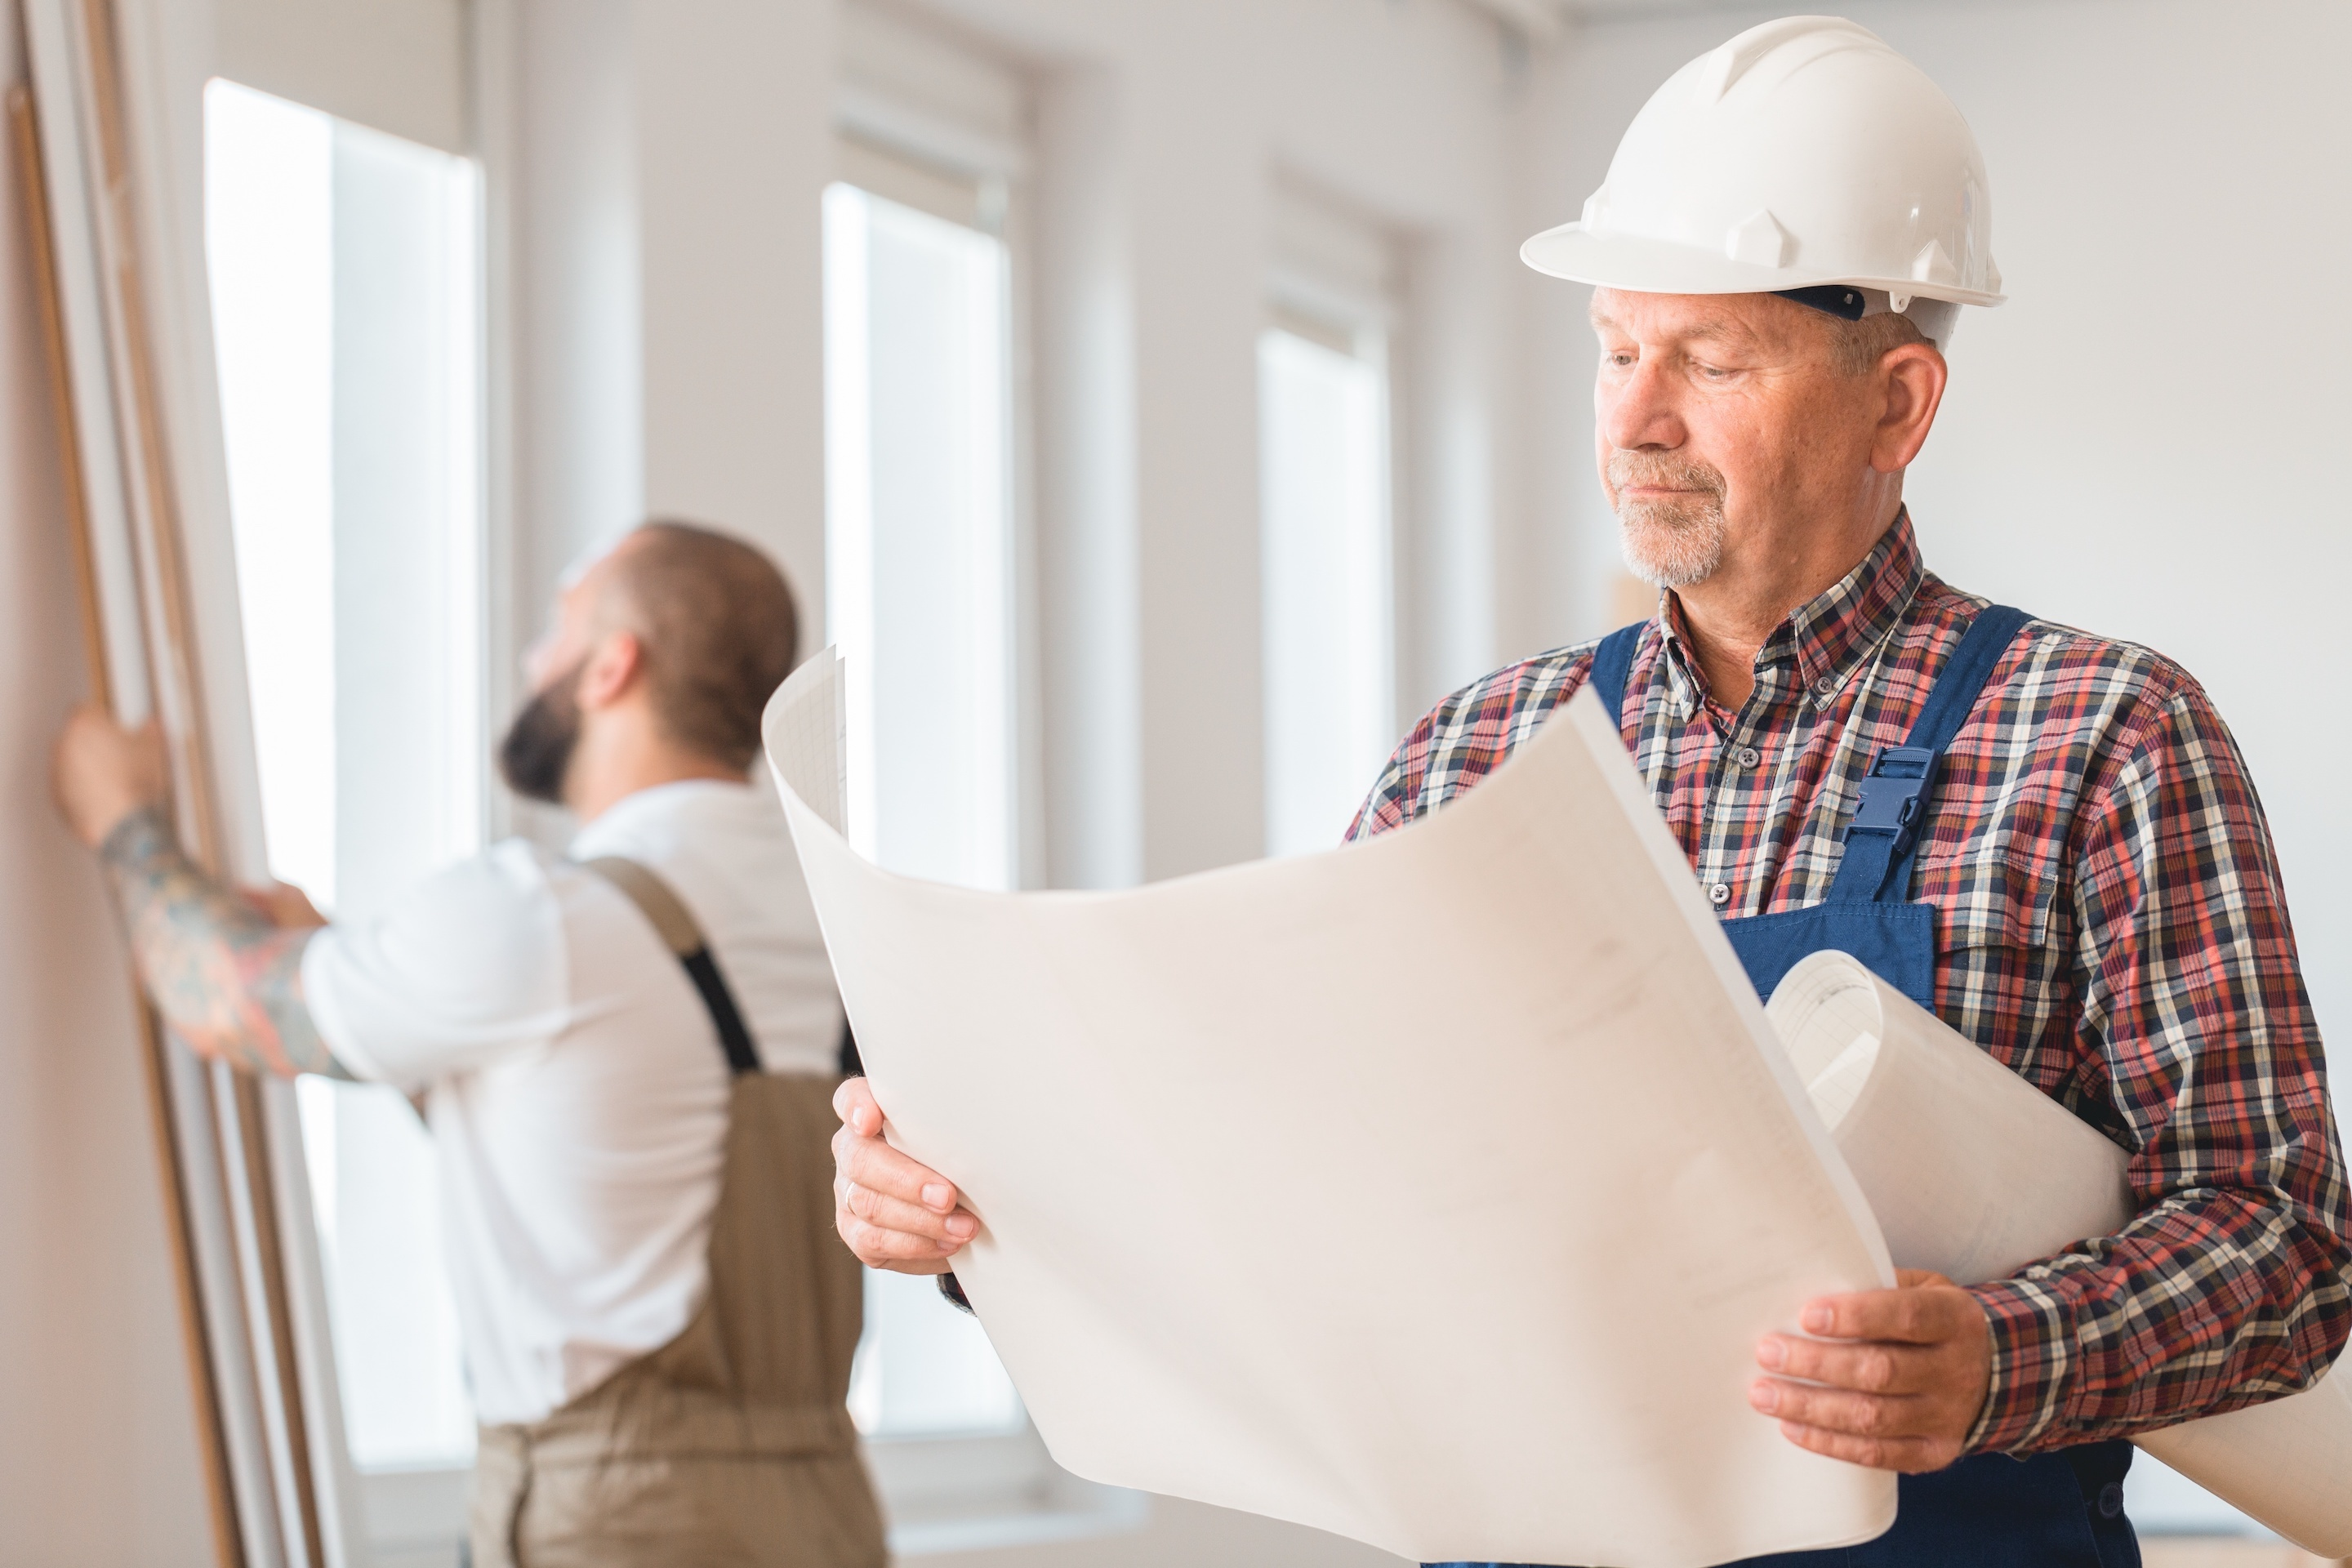 Building industry's aging workforce